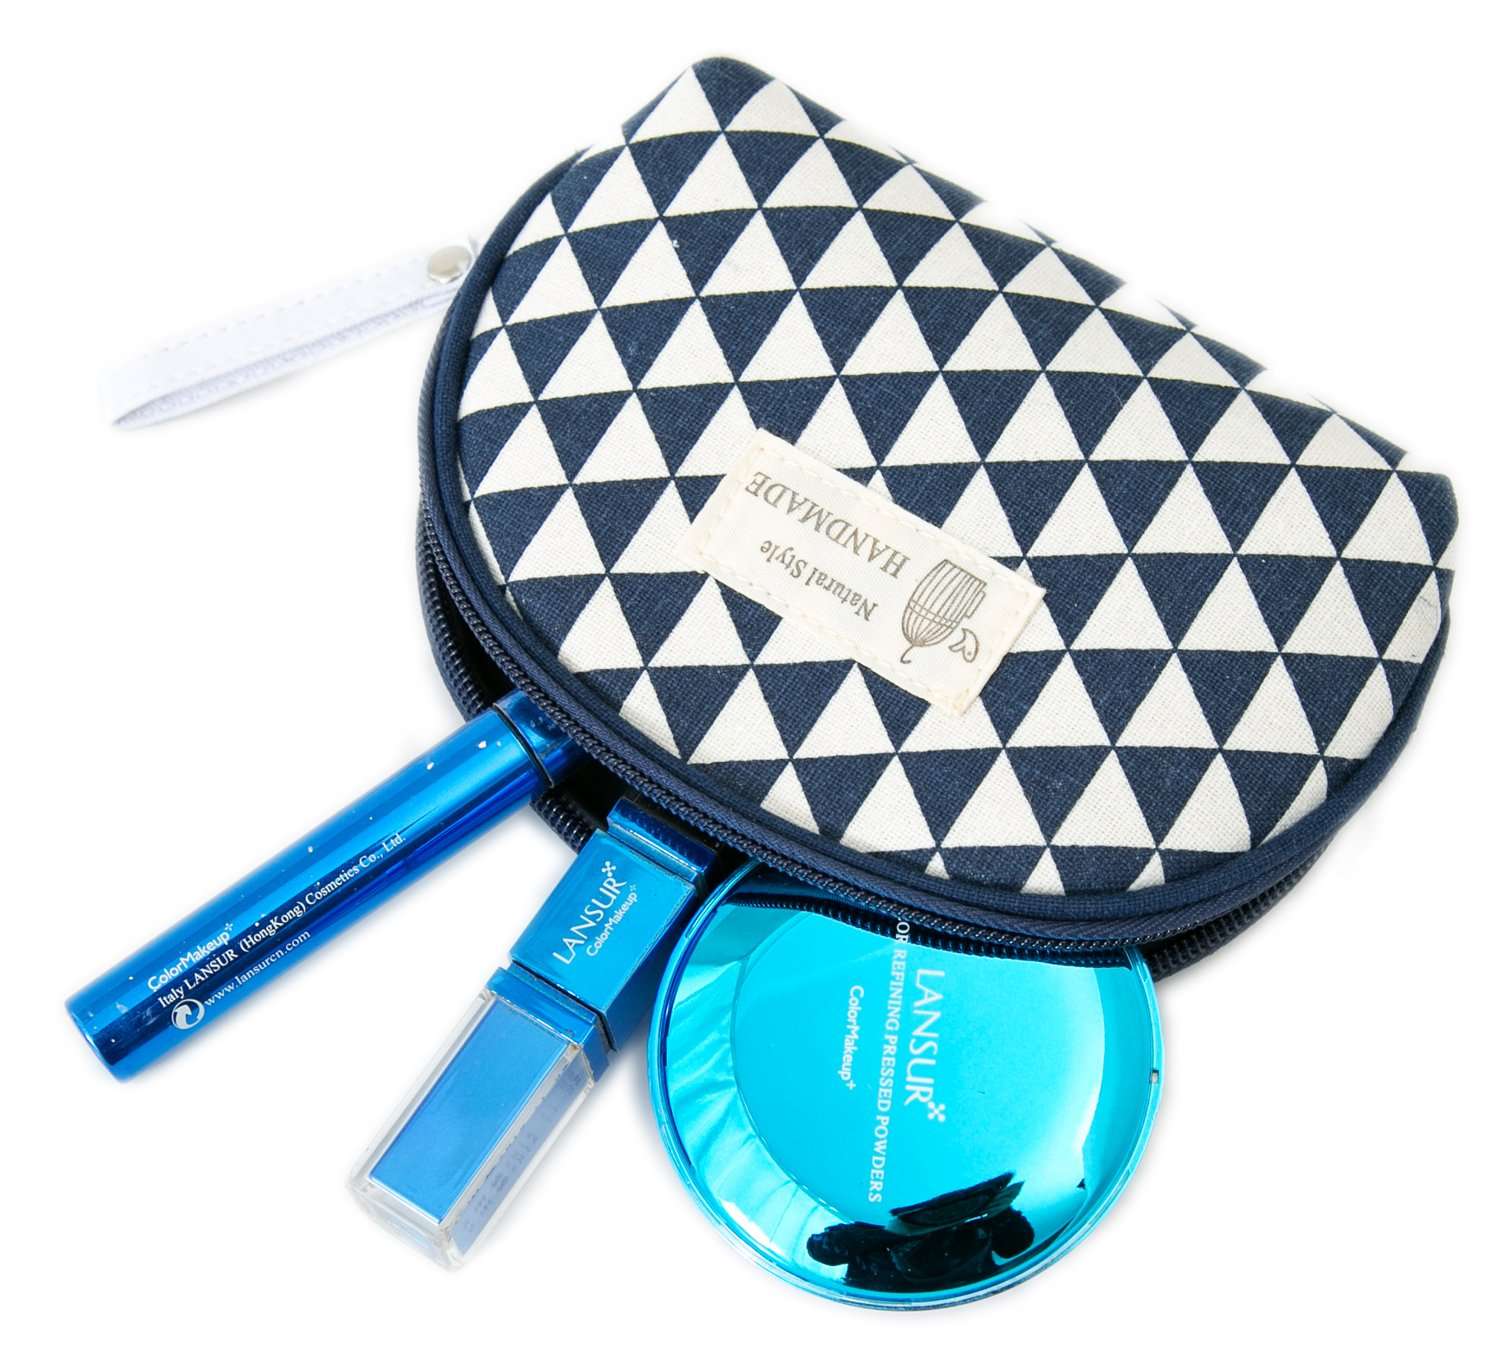 6523f9f88d0f Amazon.com   Zhoma 3 Piece Cosmetic Bag Set - Makeup Bags And Travel Case -  Blue   Beauty